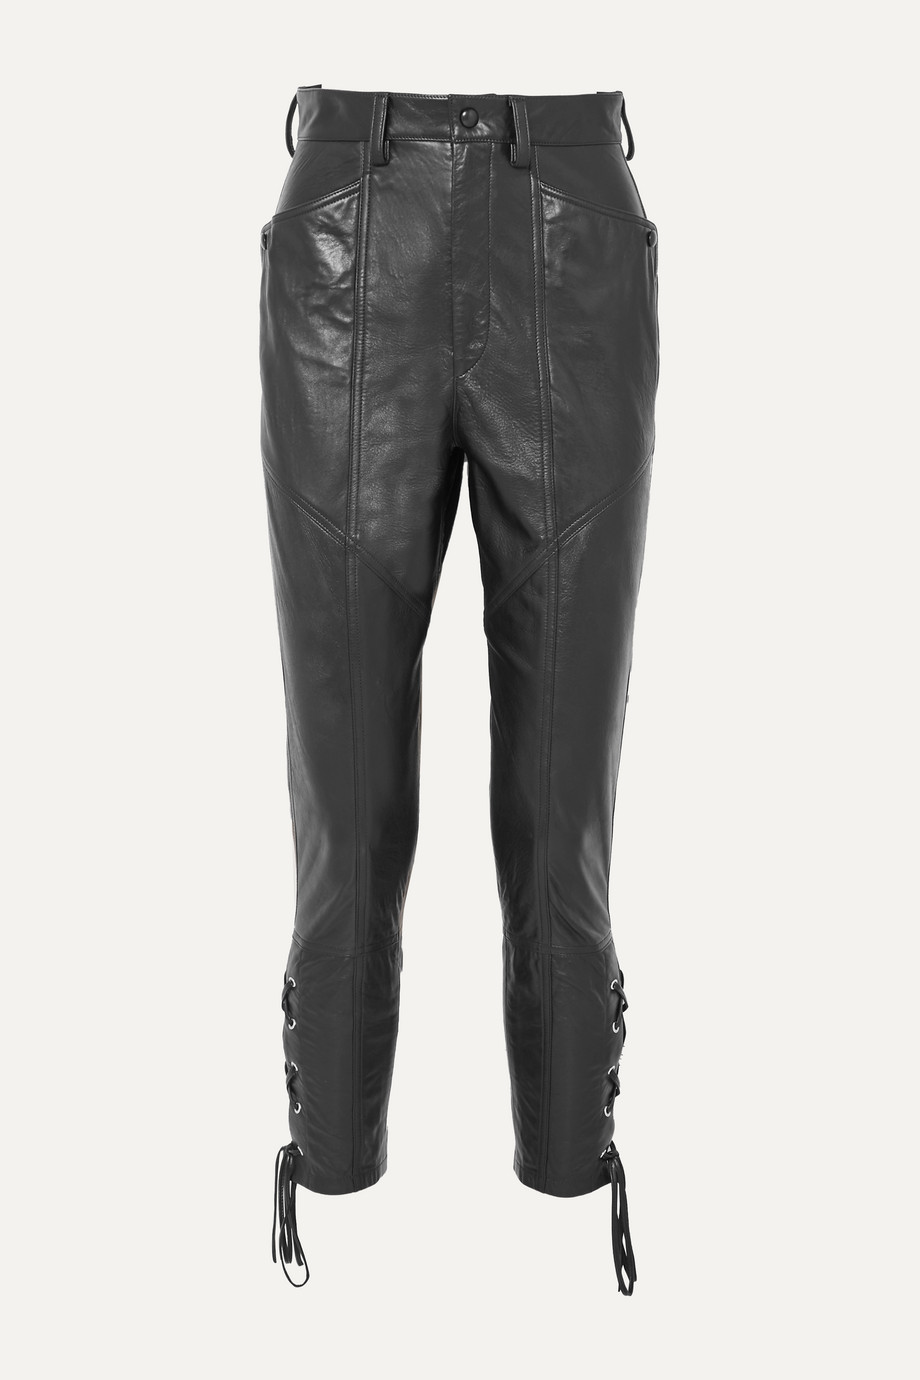 Isabel Marant Cadix lace-up tapered leather pants